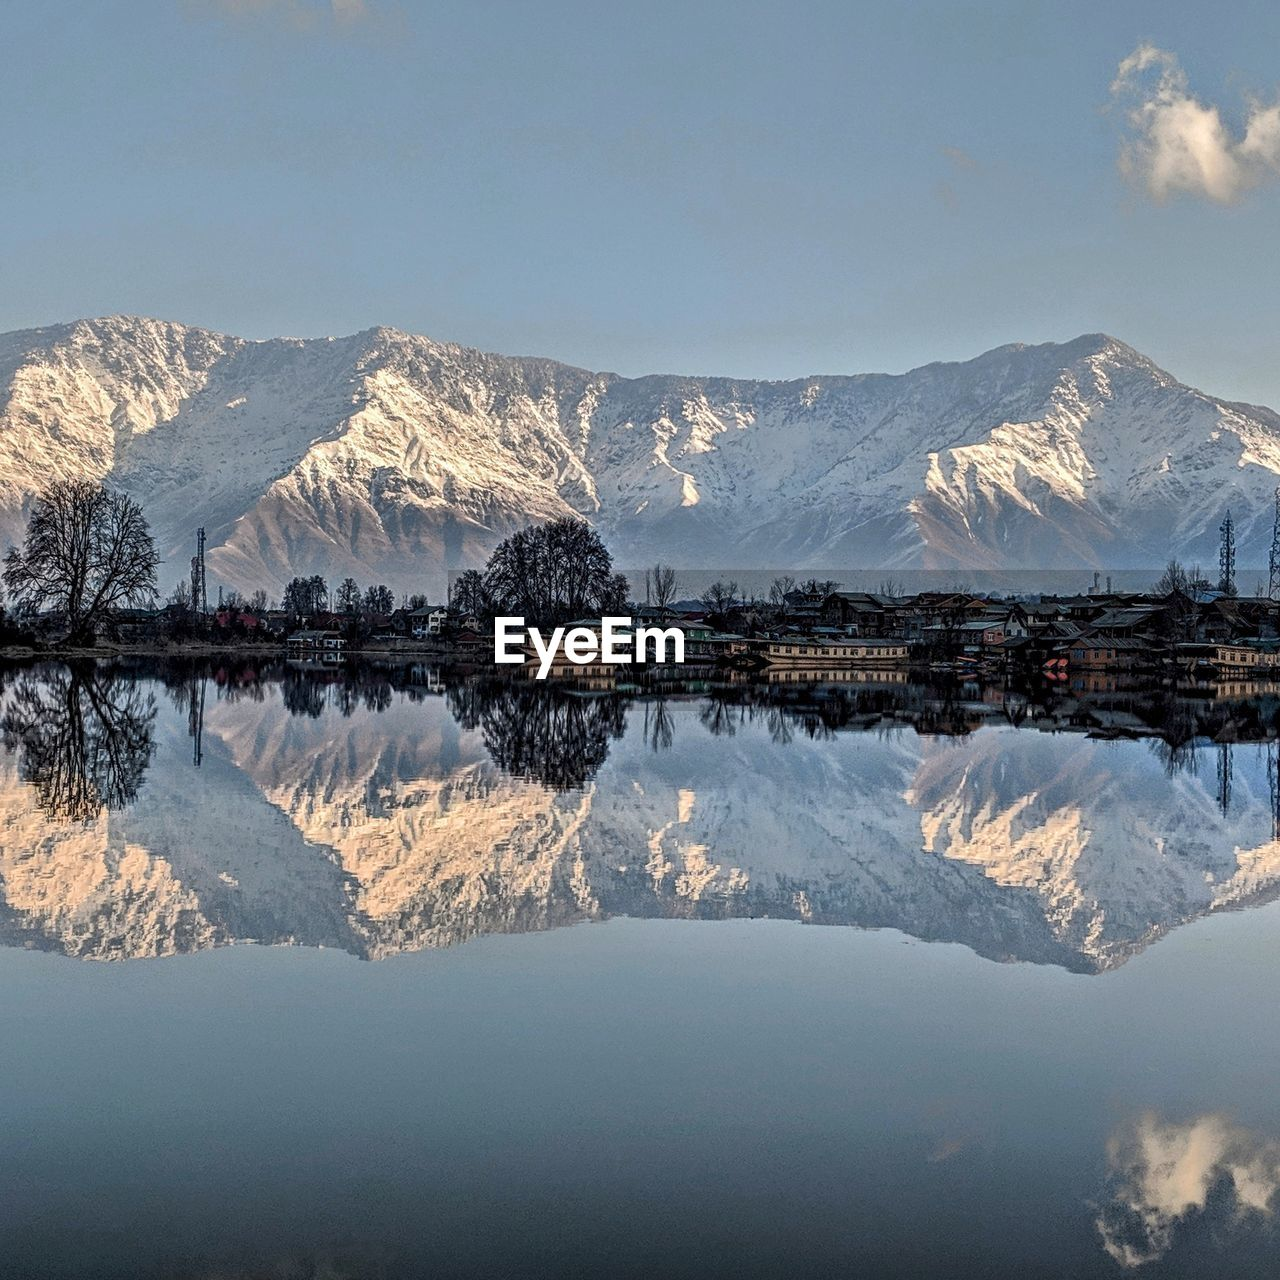 mountain, reflection, water, scenics - nature, sky, beauty in nature, cold temperature, mountain range, lake, tranquility, waterfront, winter, tranquil scene, nature, snow, snowcapped mountain, no people, symmetry, outdoors